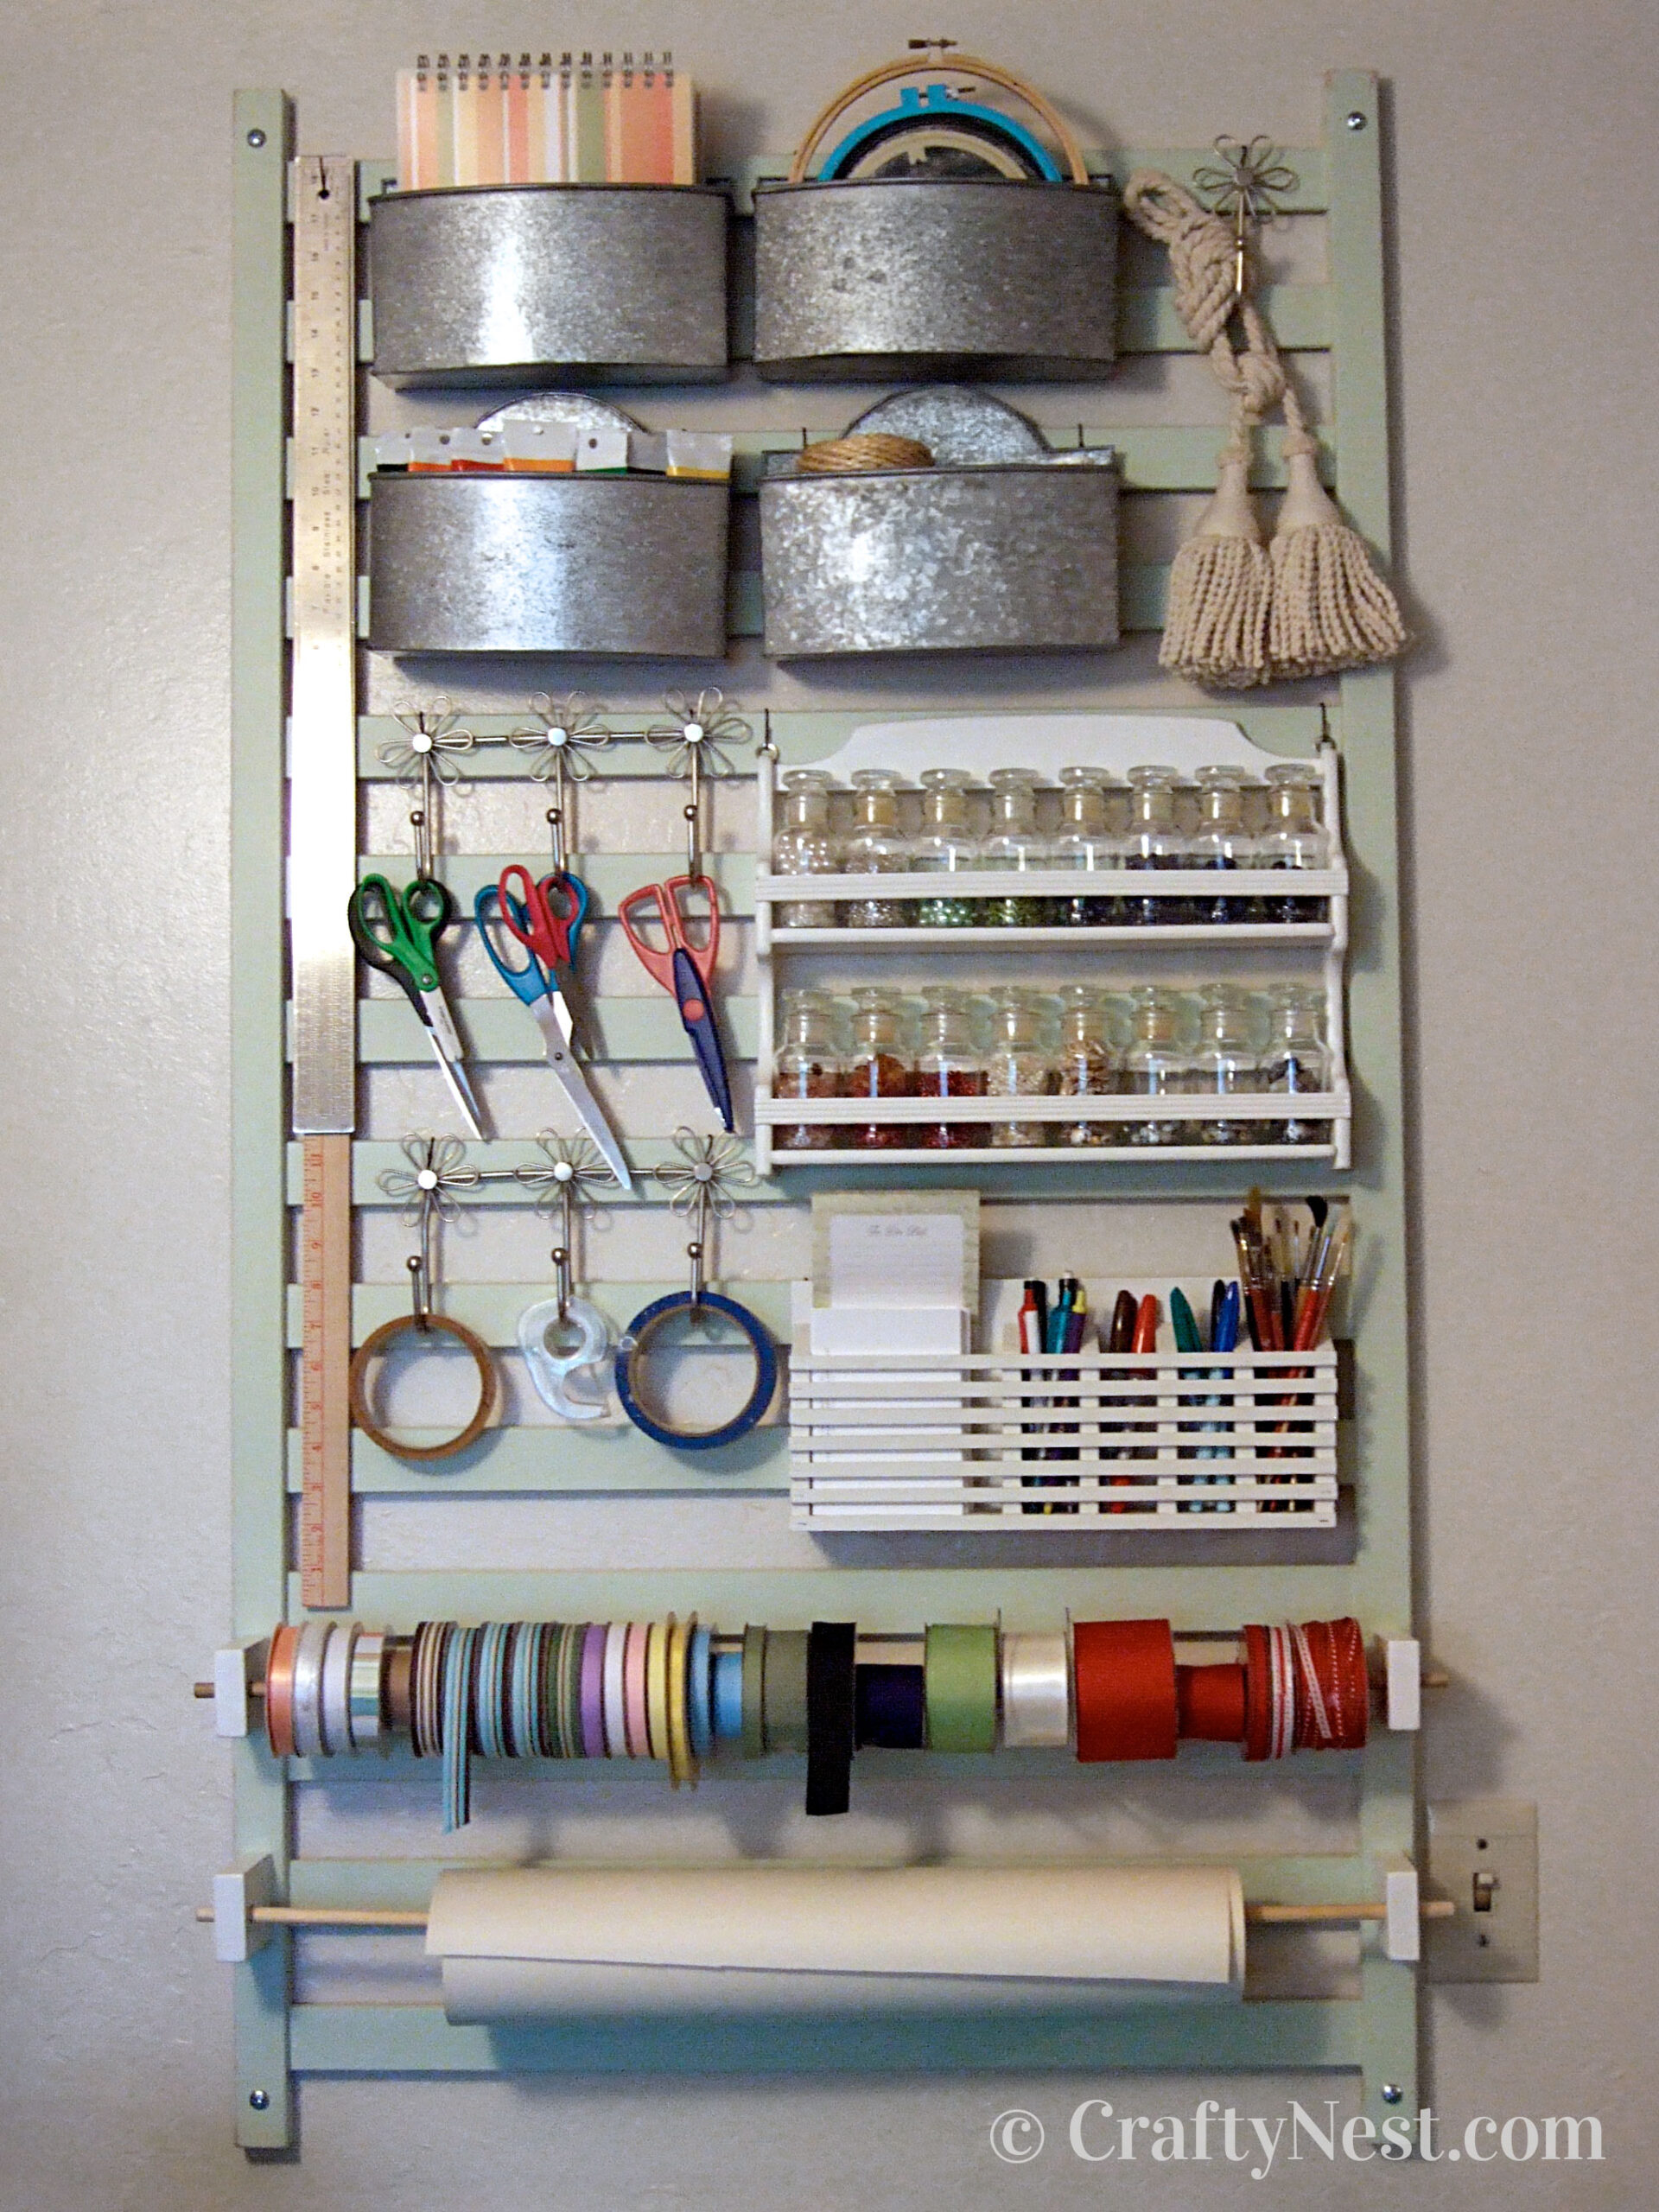 Crafting supplies wall organizer, photo